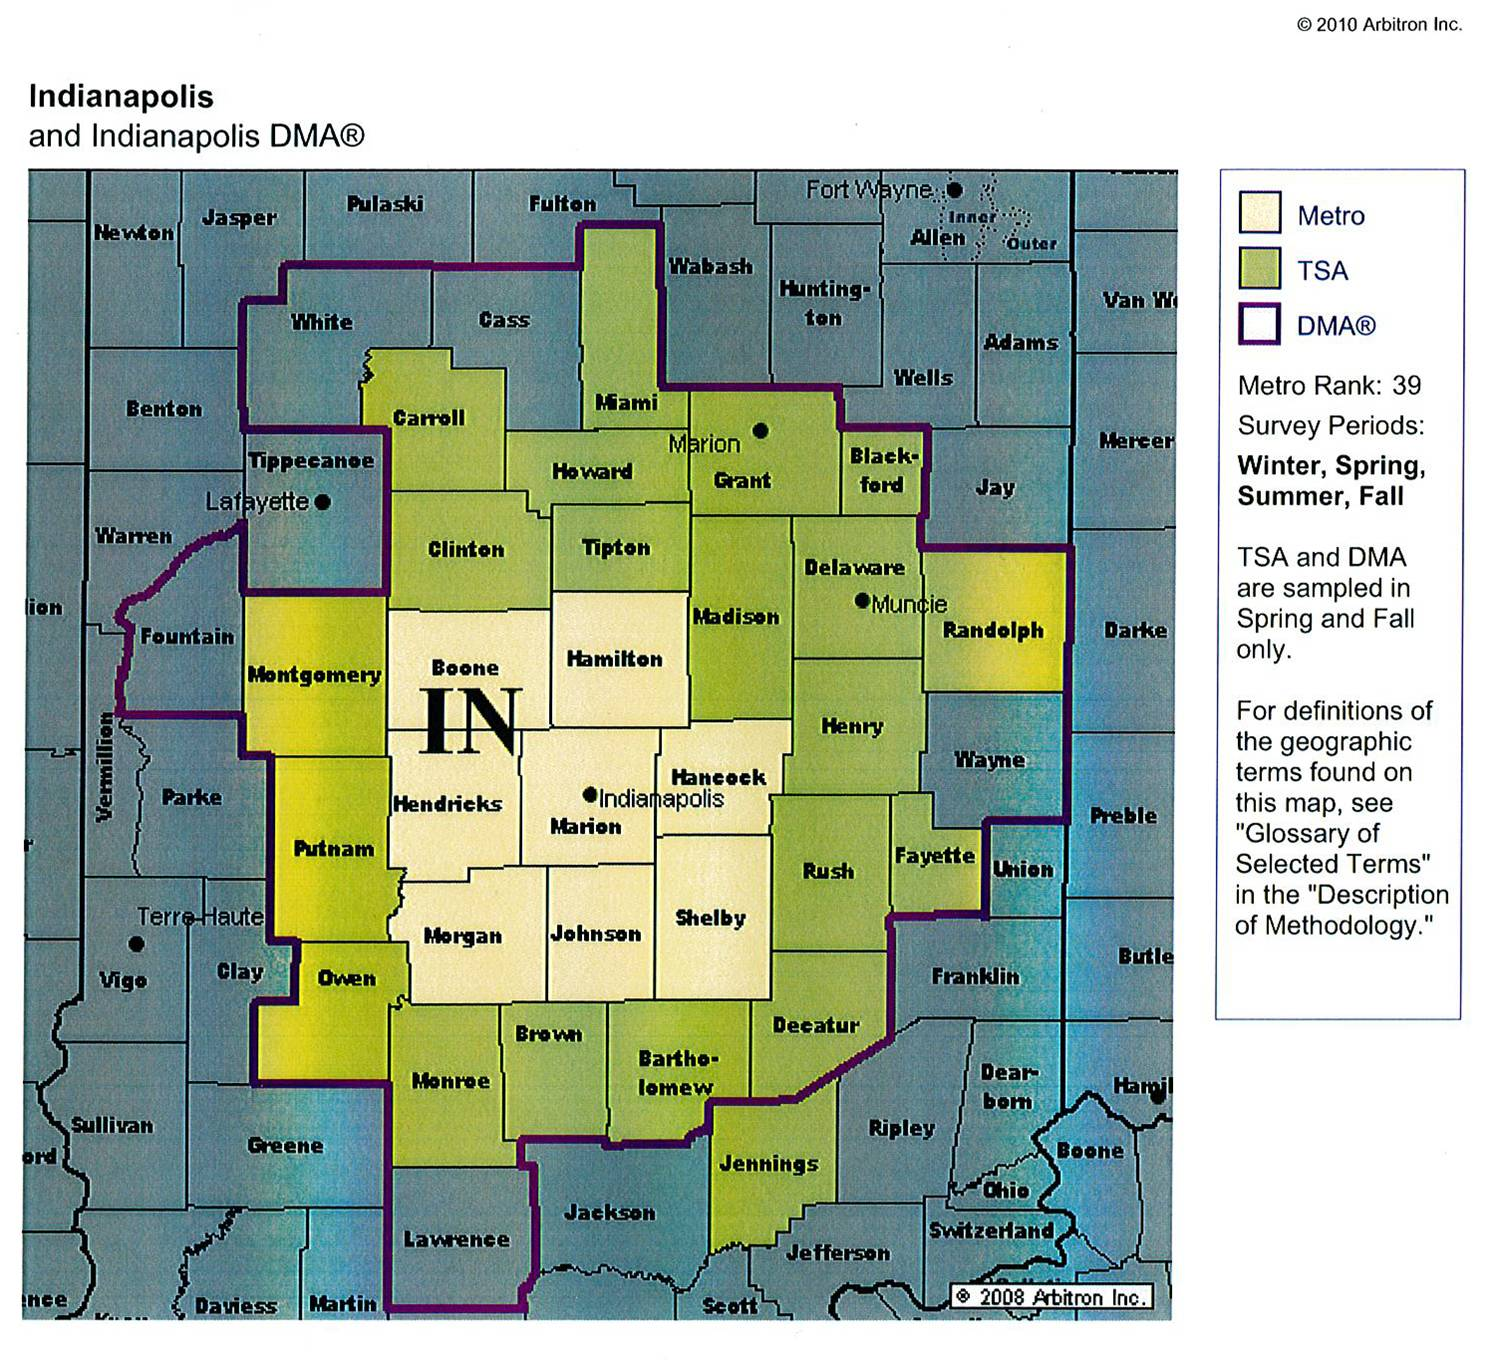 MetroDMA Map  Radio Indiana